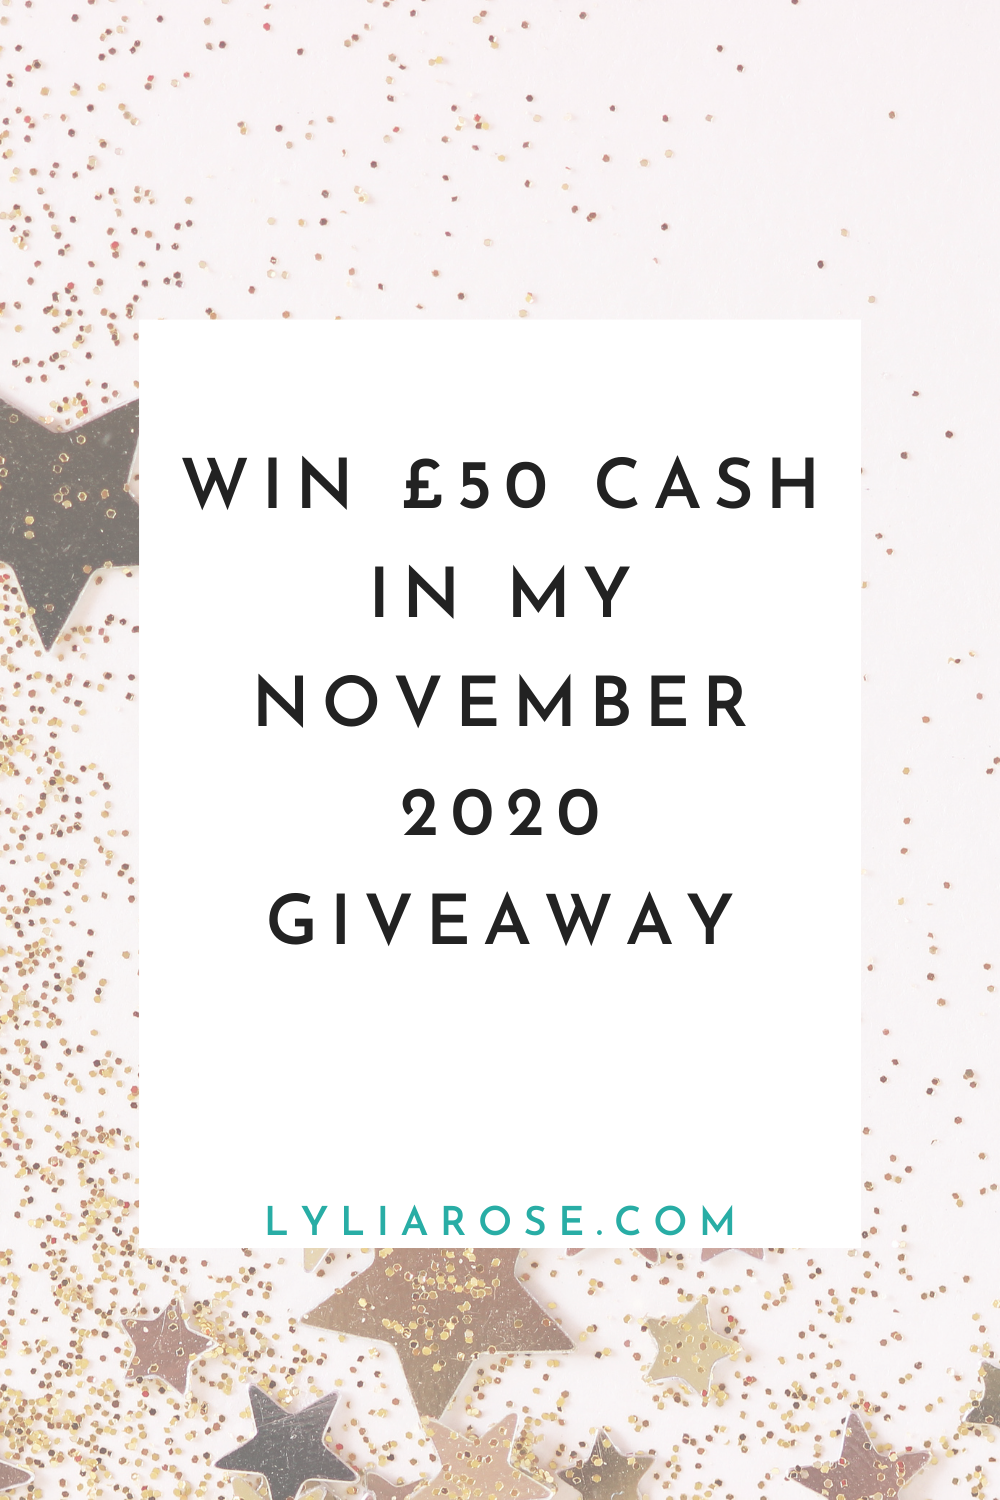 Win £50 cash in my November 2020 giveaway